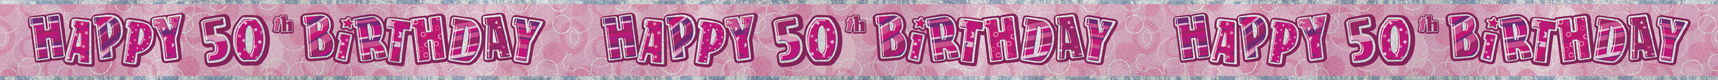 50th birthday party banner decorations Tamworth